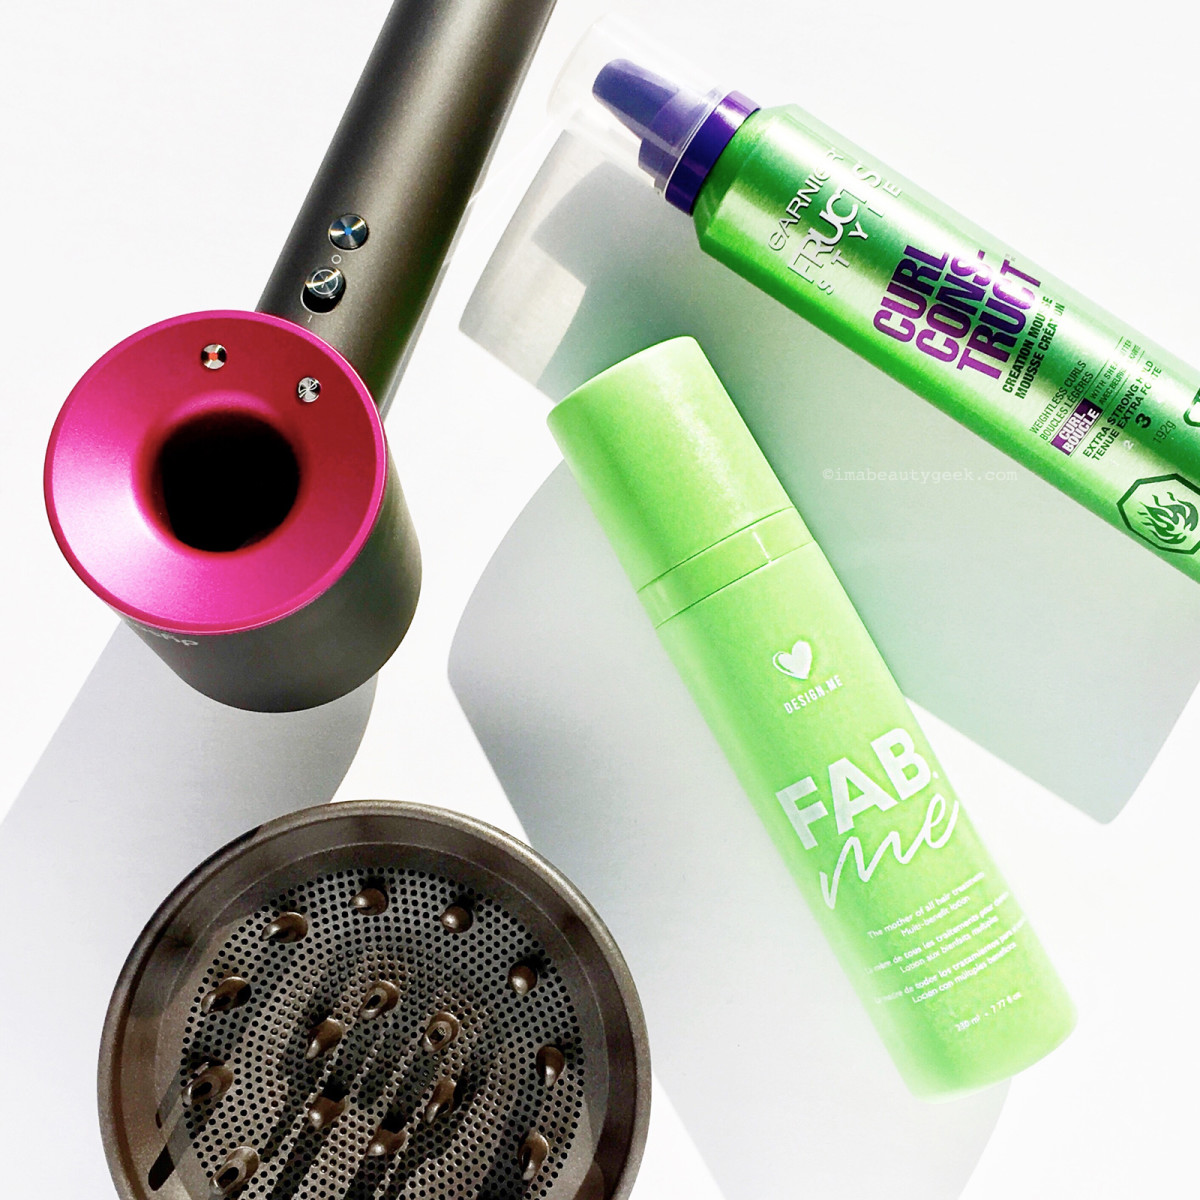 Design.Me FabMe leave-in treatment combines conditioning with styling and protection; applied before my usual Garnier Fructis Curl Construct Mousse and diffused for 5 min, it helped give me great texture and waves.